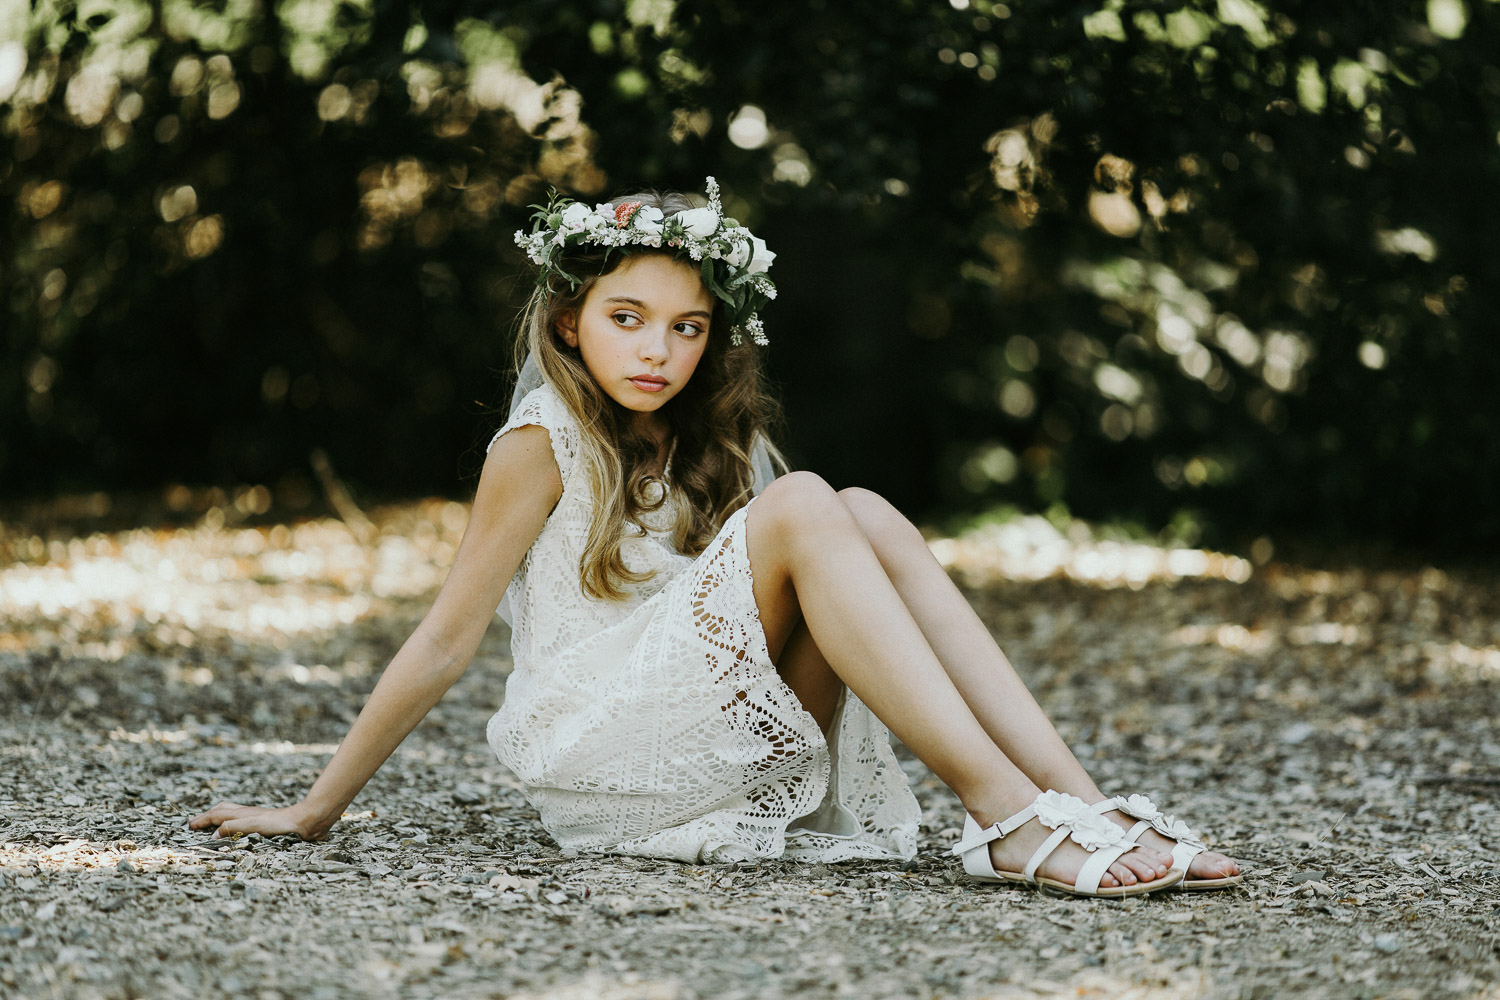 Image of a white dress girl sitting on the ground